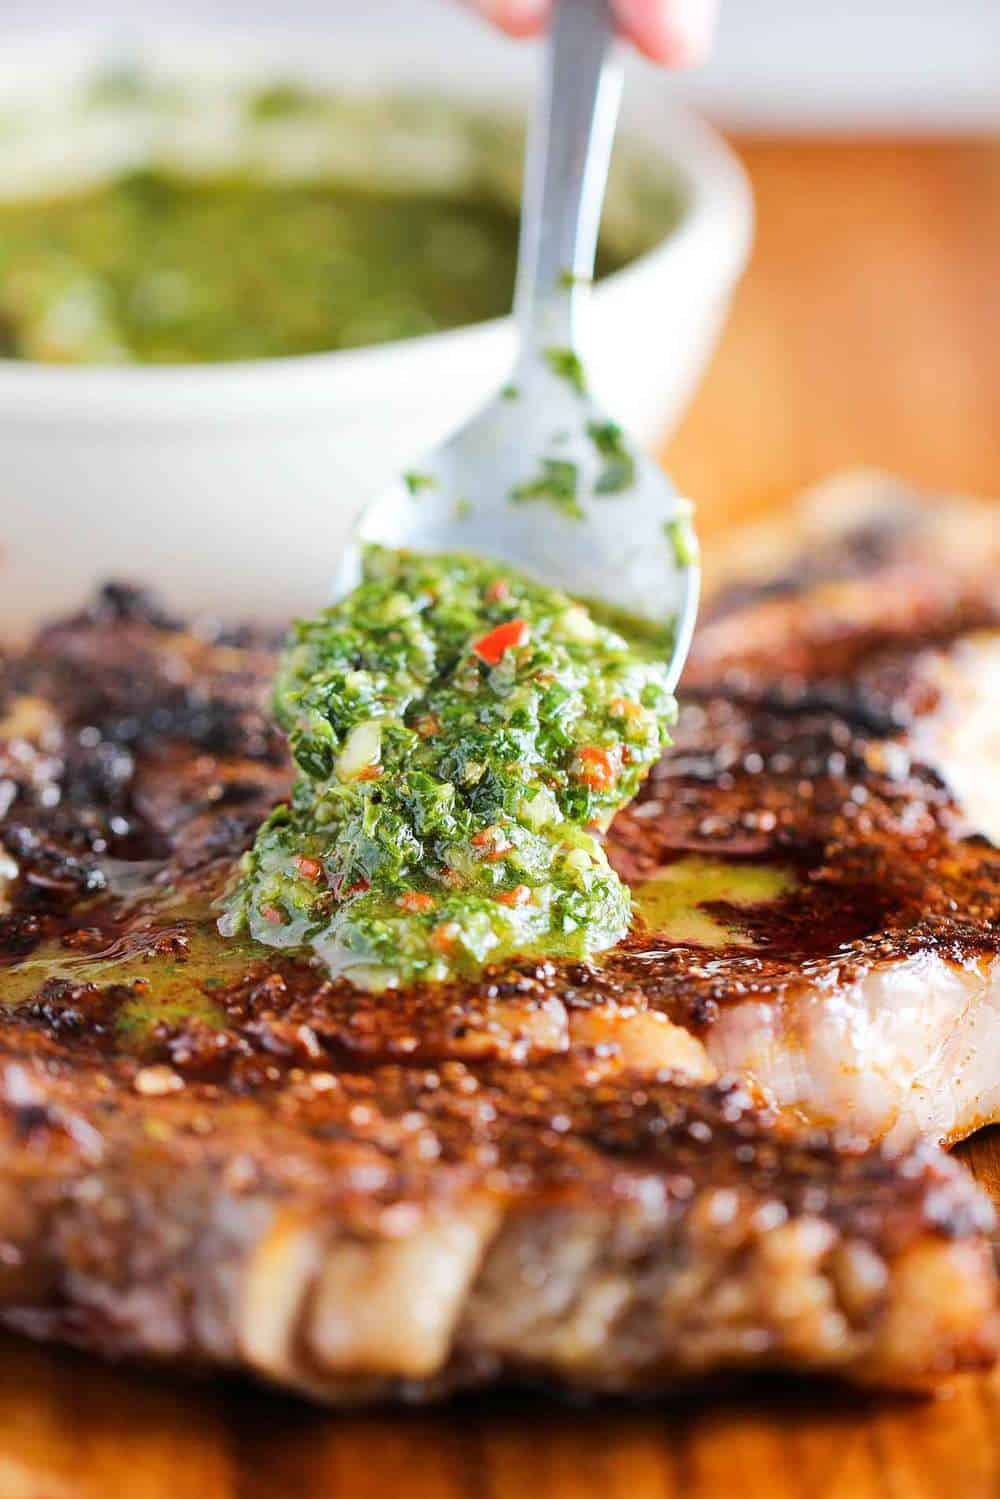 Chimichurris sauce is amazing on a grilled ribeye steak